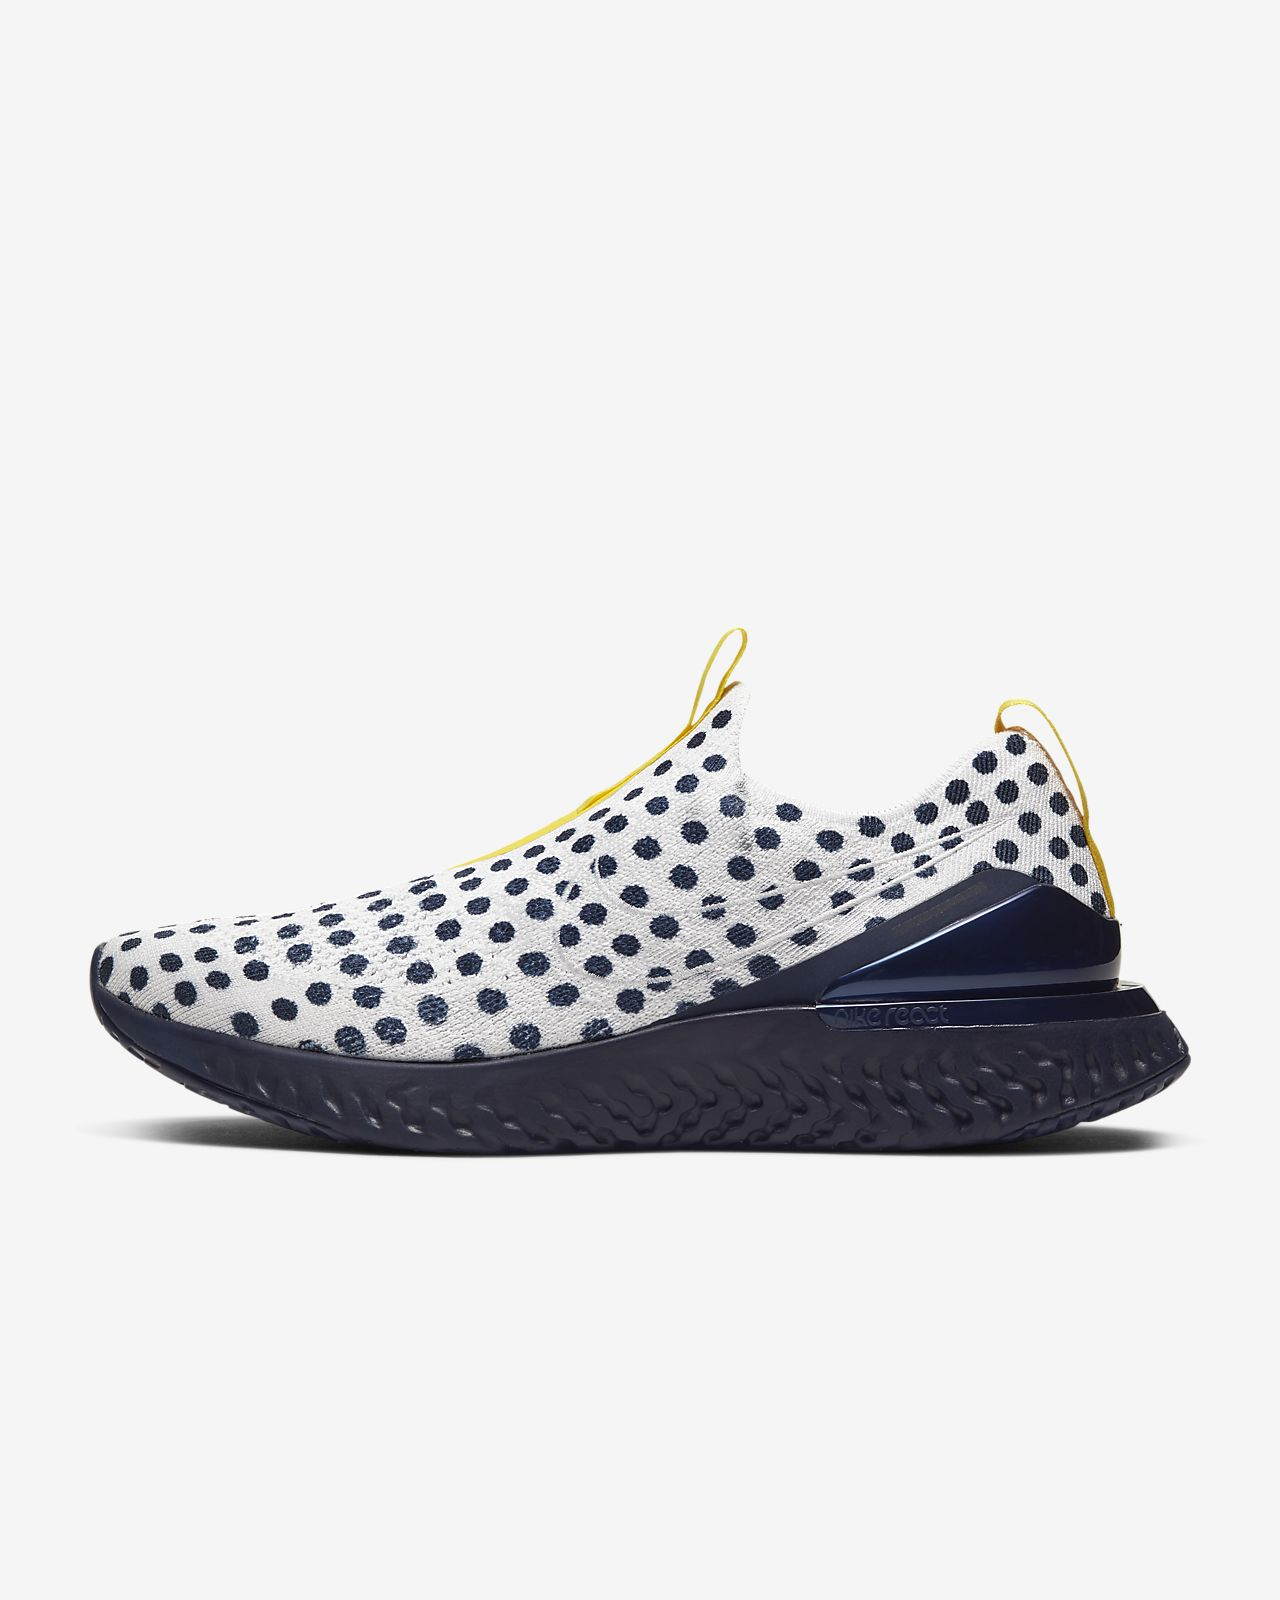 Nike Epic Phantom React A.I.R. Cody Husdon 男款跑鞋